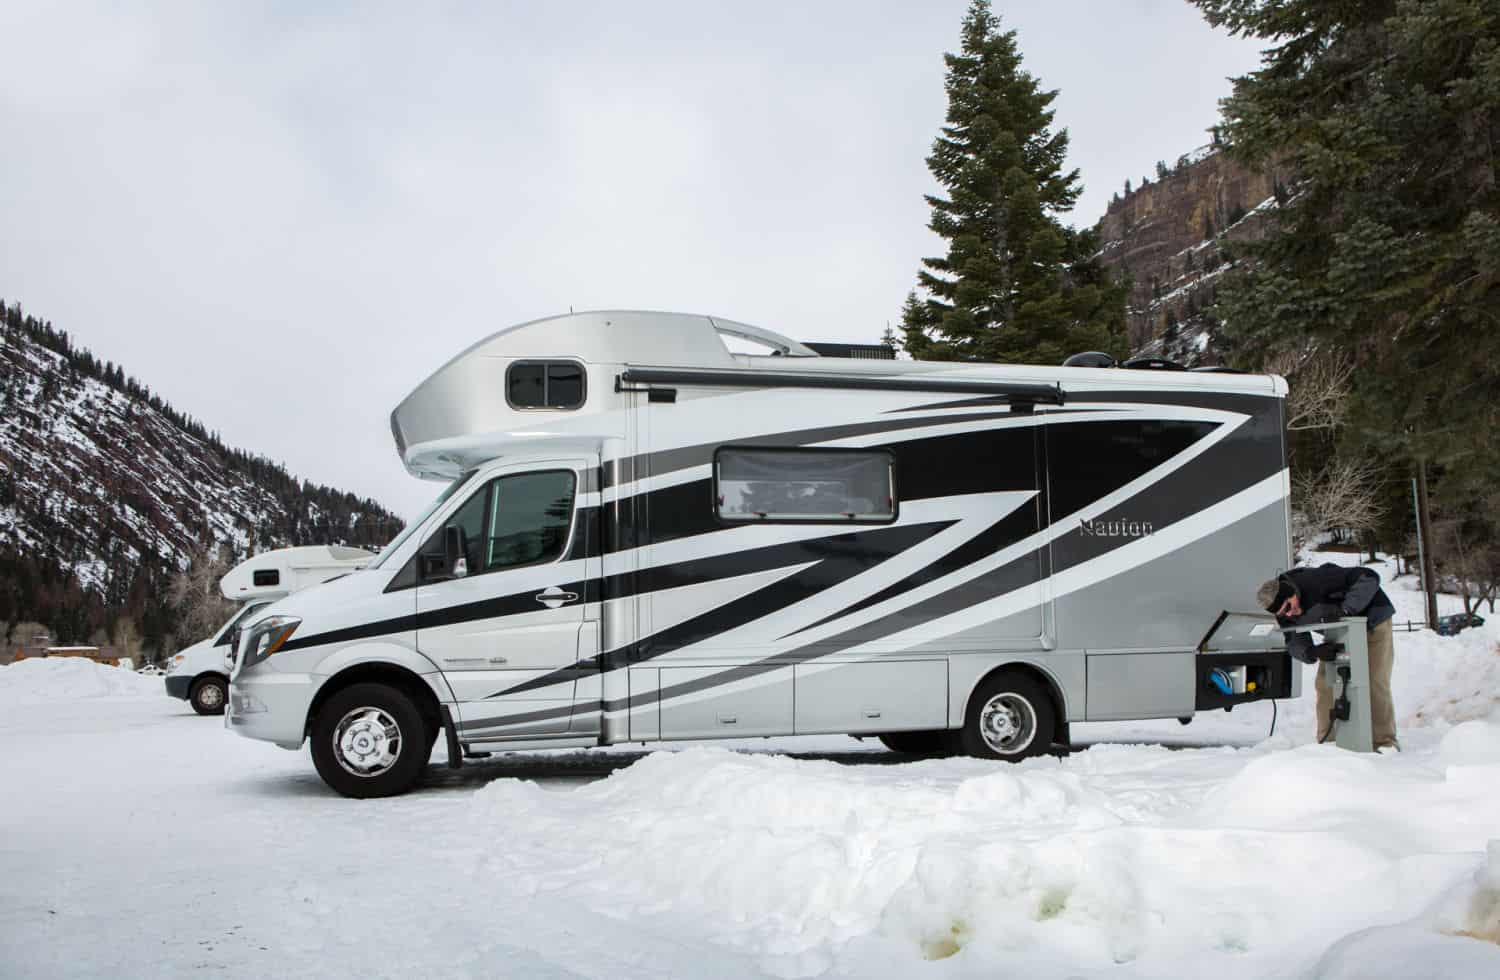 Winnebago Navion small RV parked in the snow